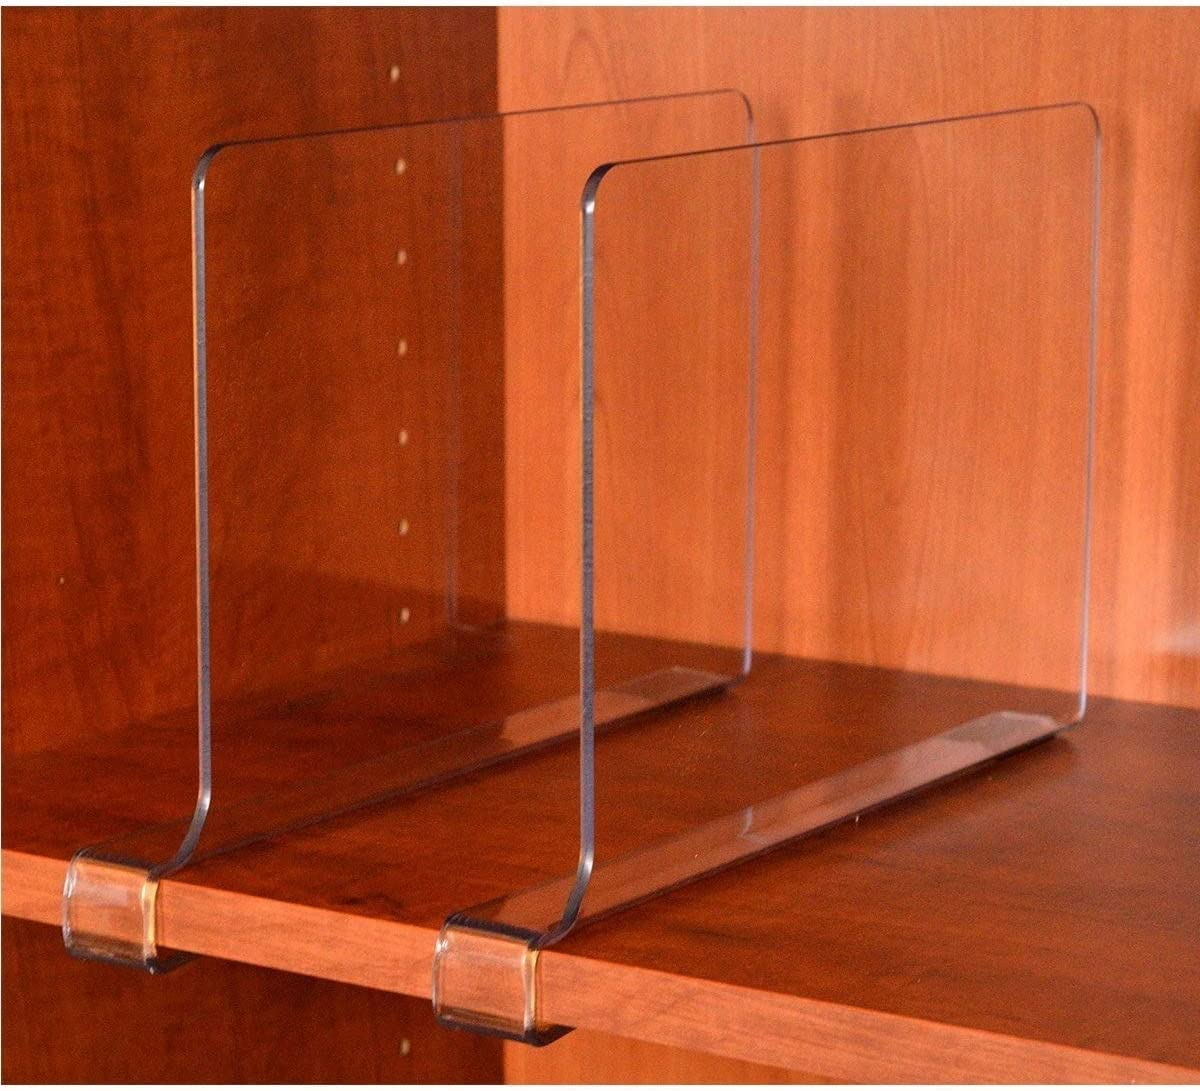 StorageAid CM-3164 4 Pack Acrylic Shelf Dividers 4 Count Clear